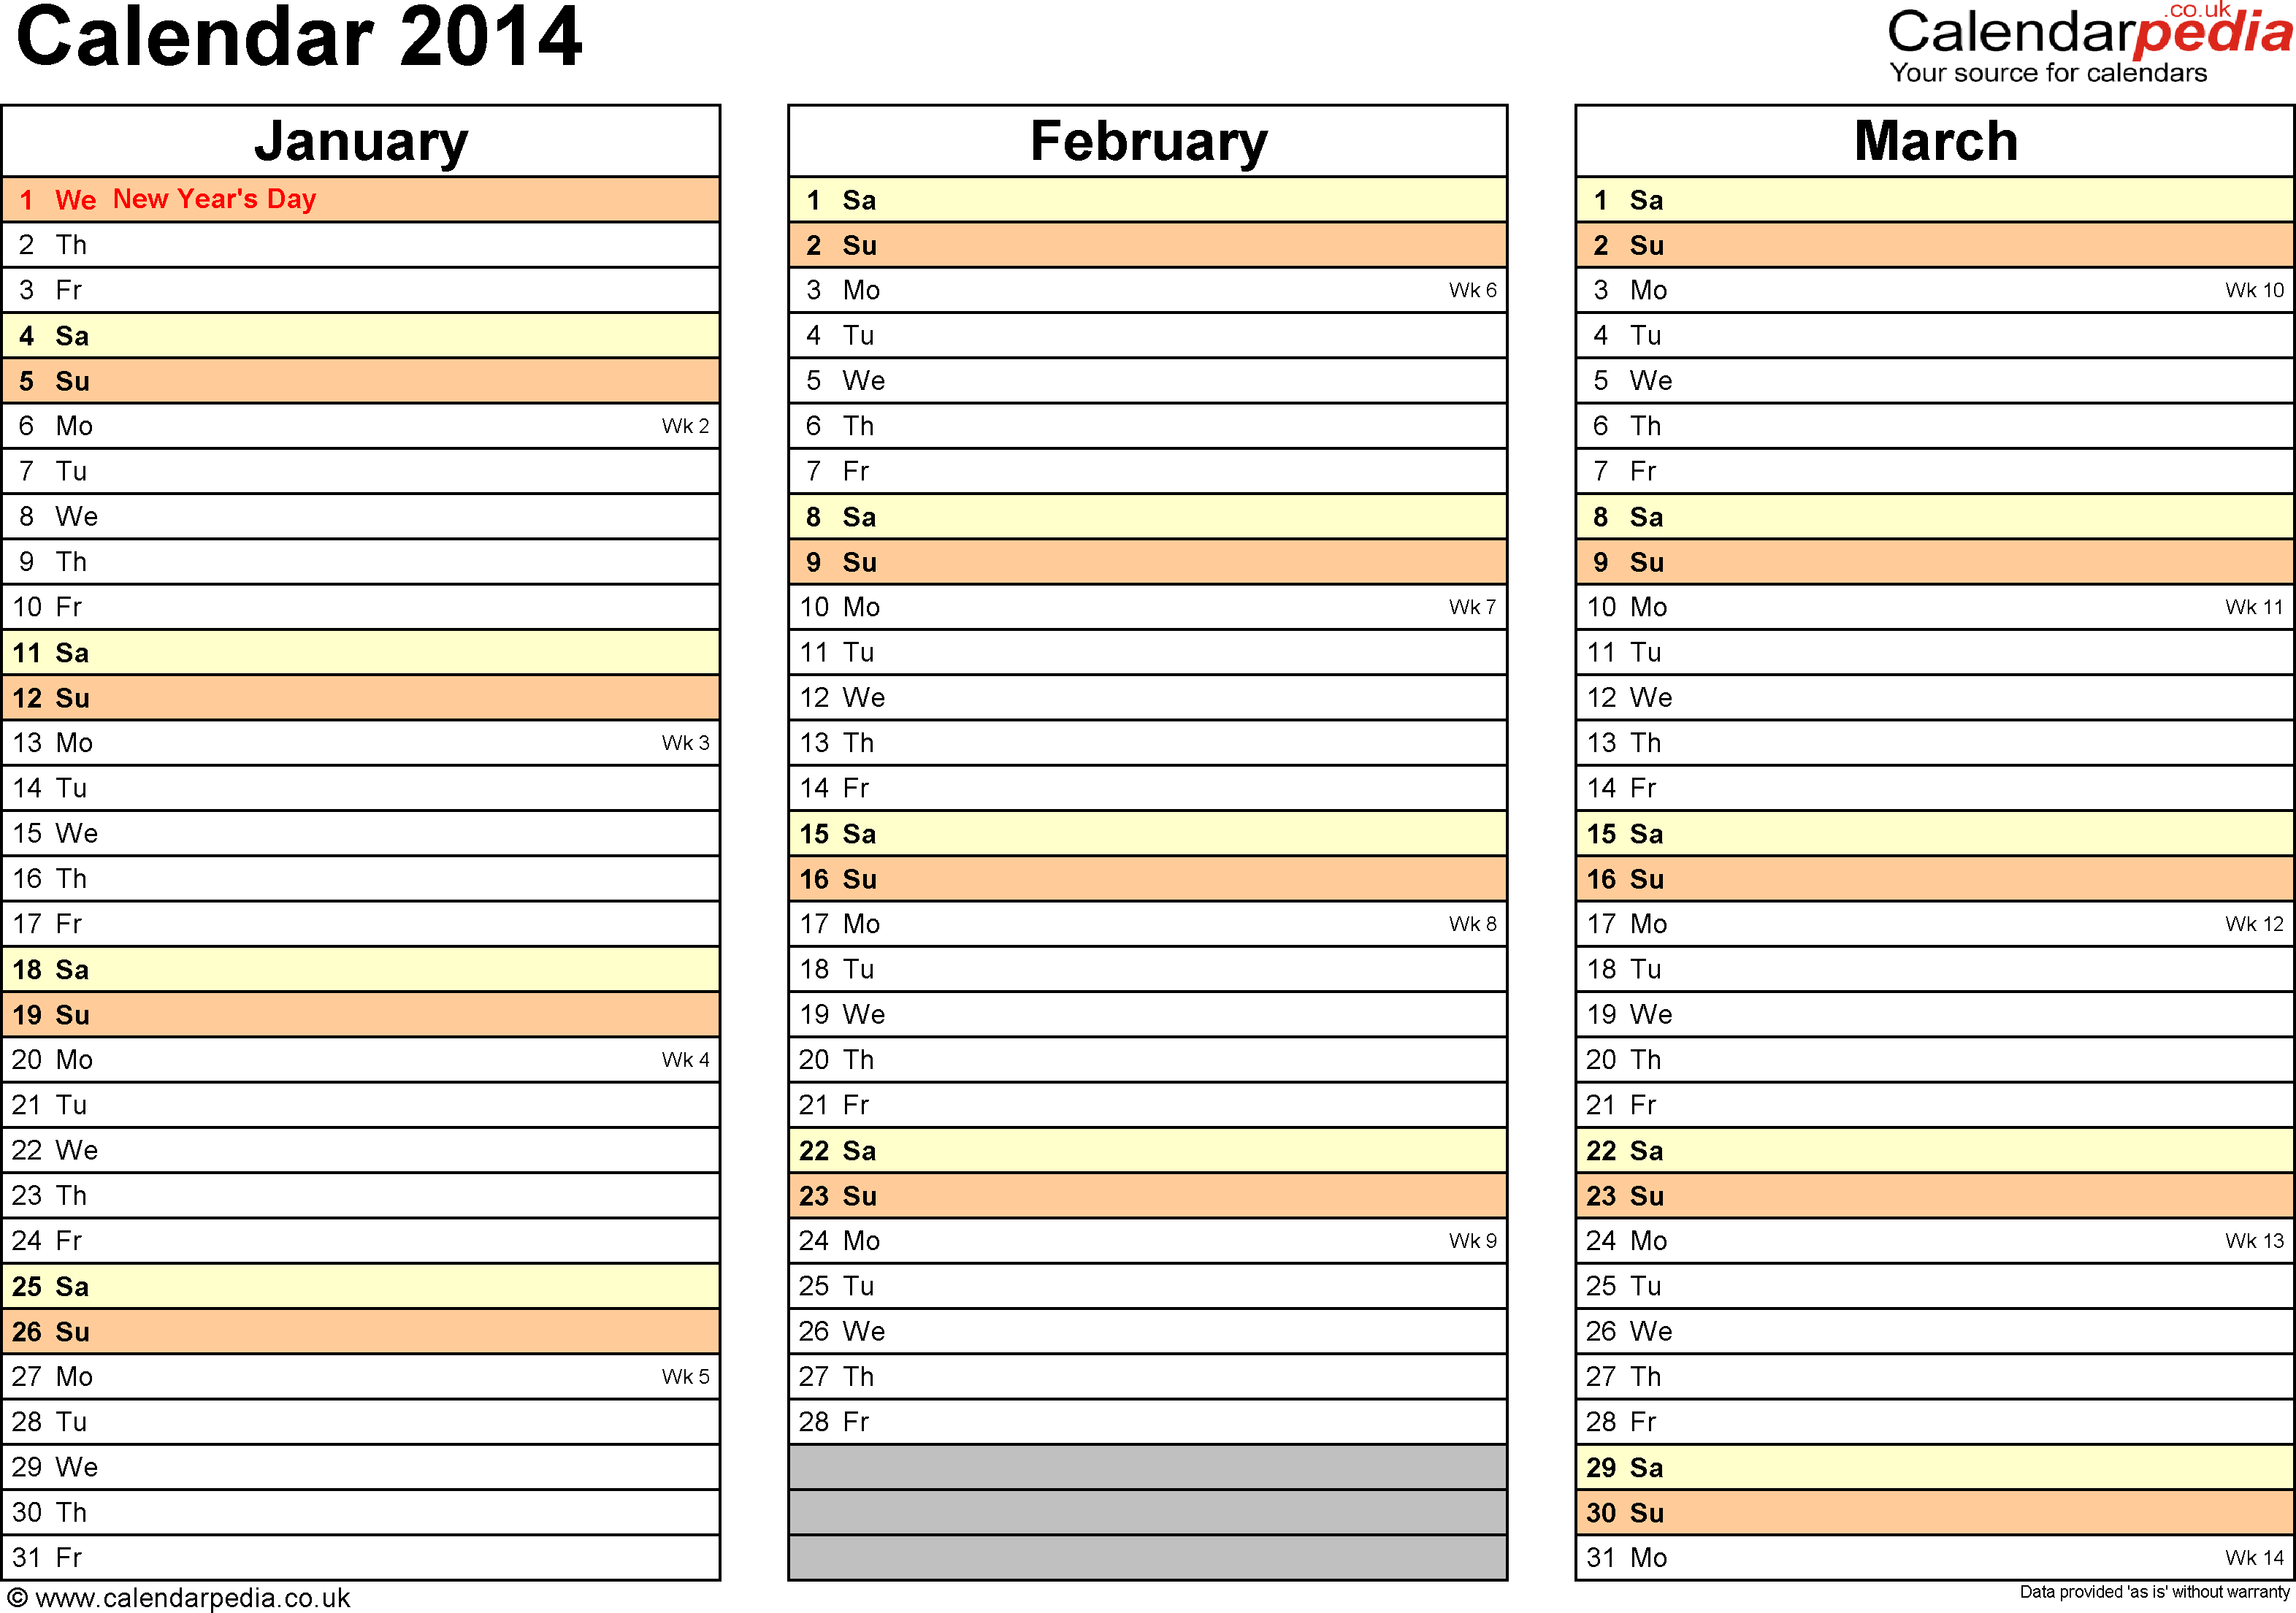 Download Template 5: Yearly calendar 2014 as Word template, landscape orientation, 4 pages, months horizontally, days vertically, with UK bank holidays and week numbers